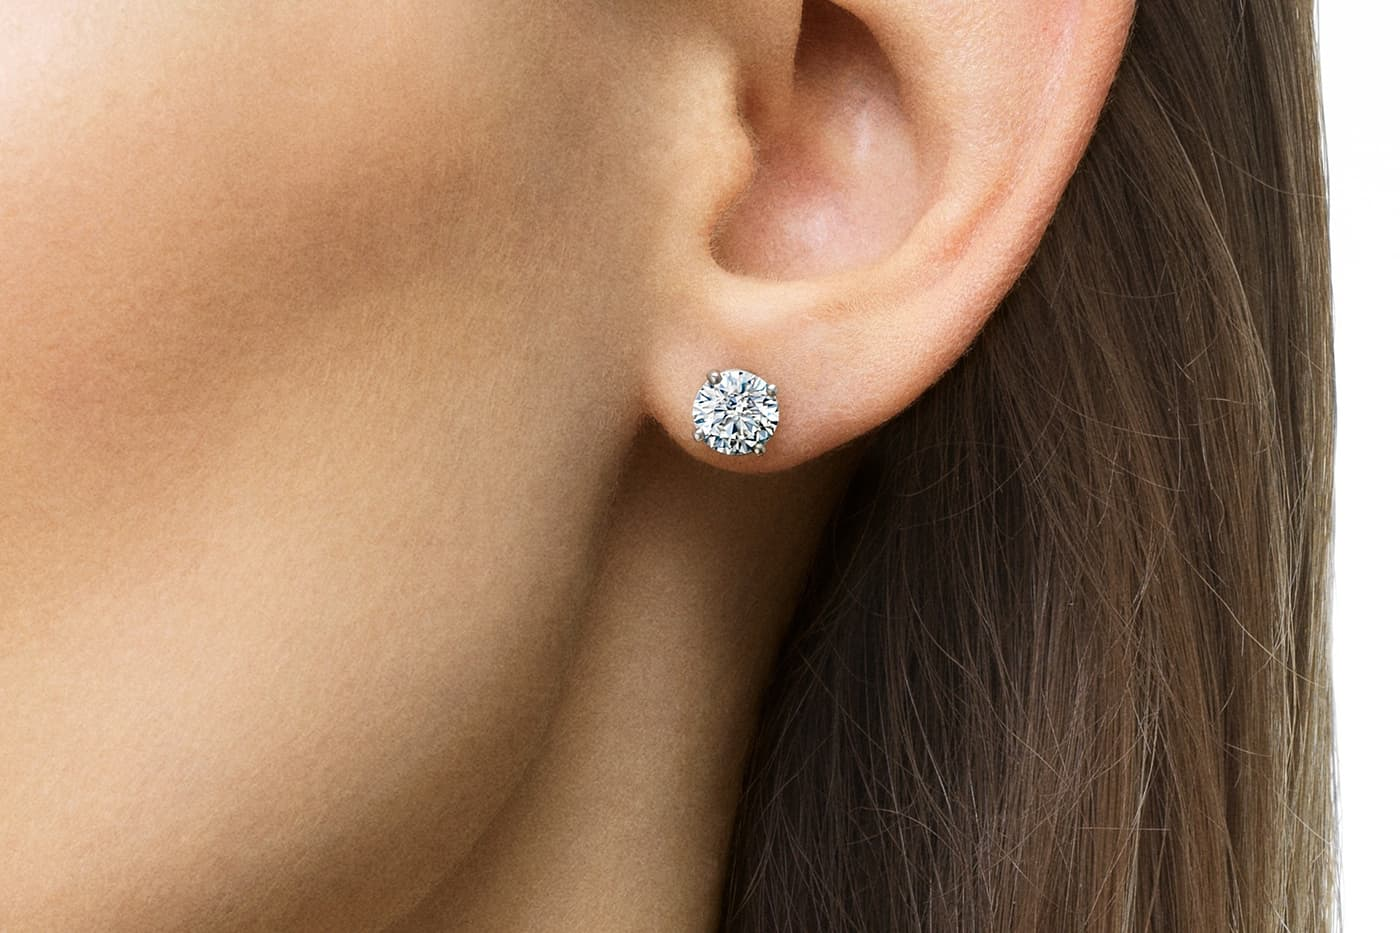 De Beers 'Classic' stud earrings with diamonds in white gold